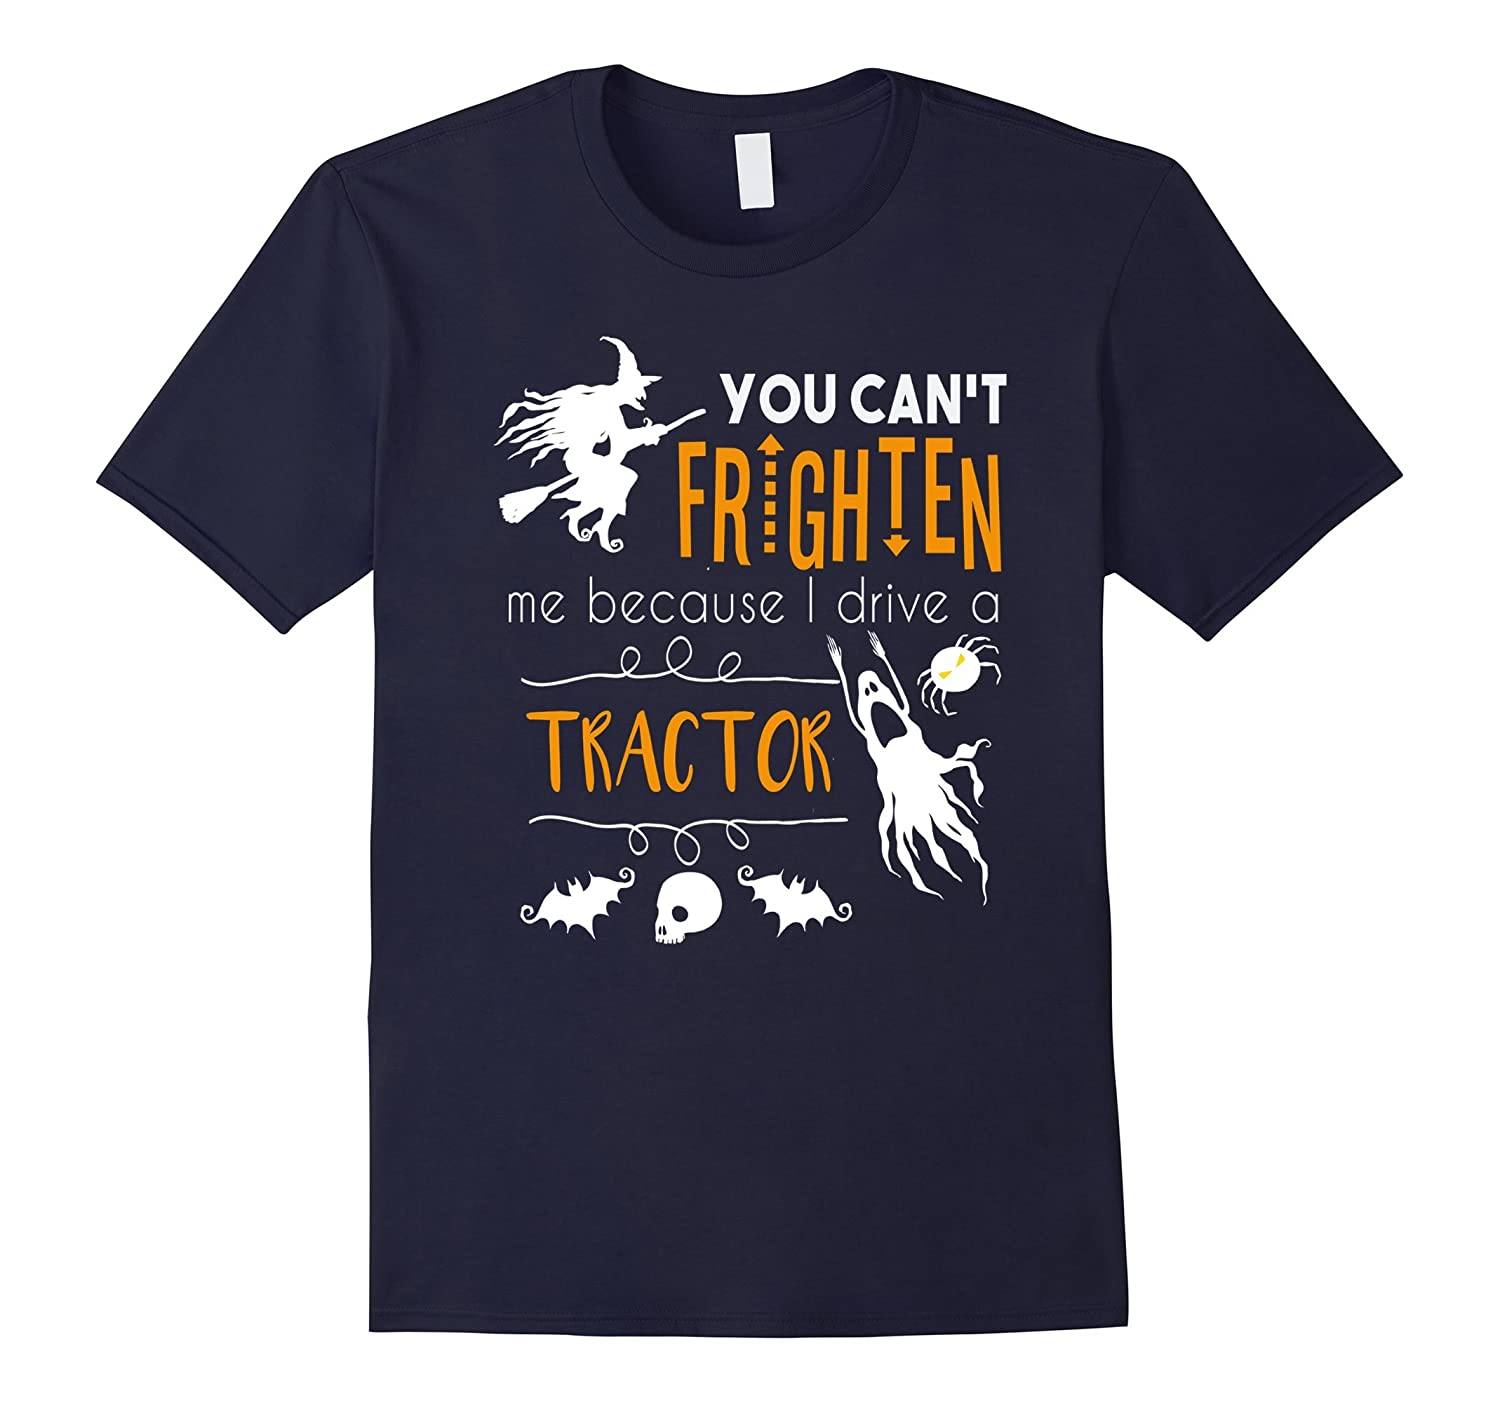 You can't frighten me tractor farming Halloween t-shirt-CL